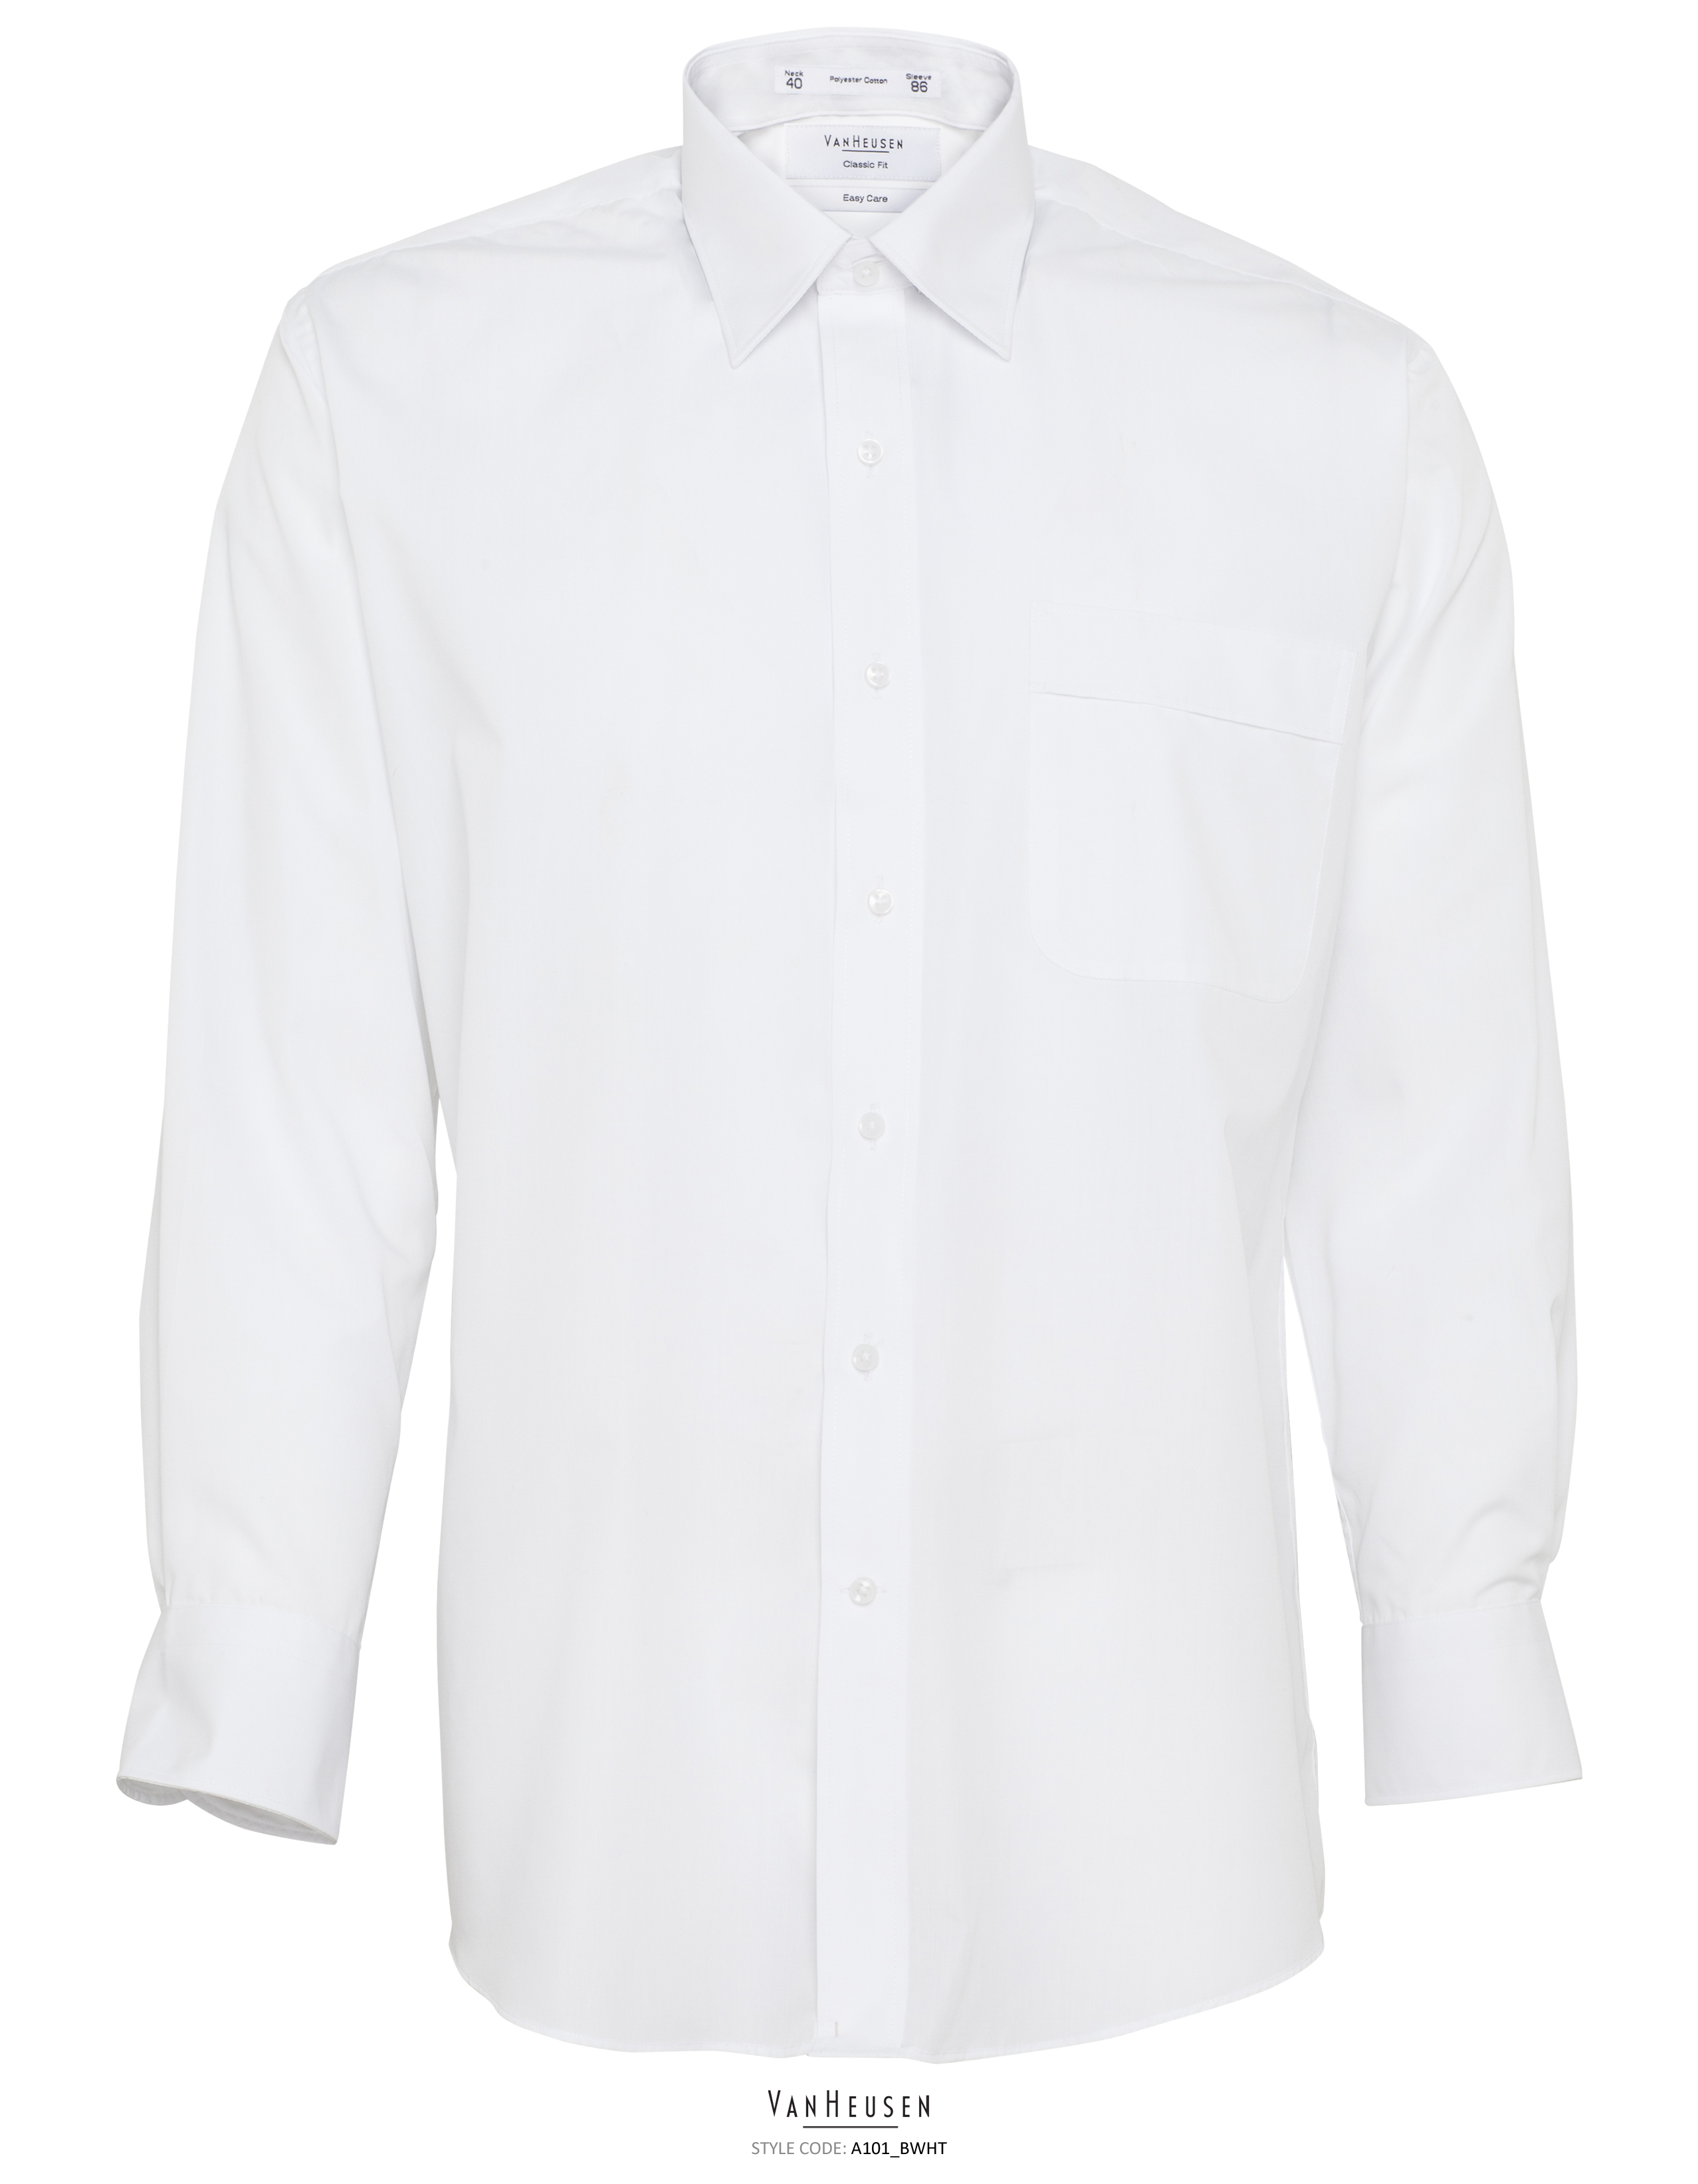 Van Huesen A101 White Business Shirt